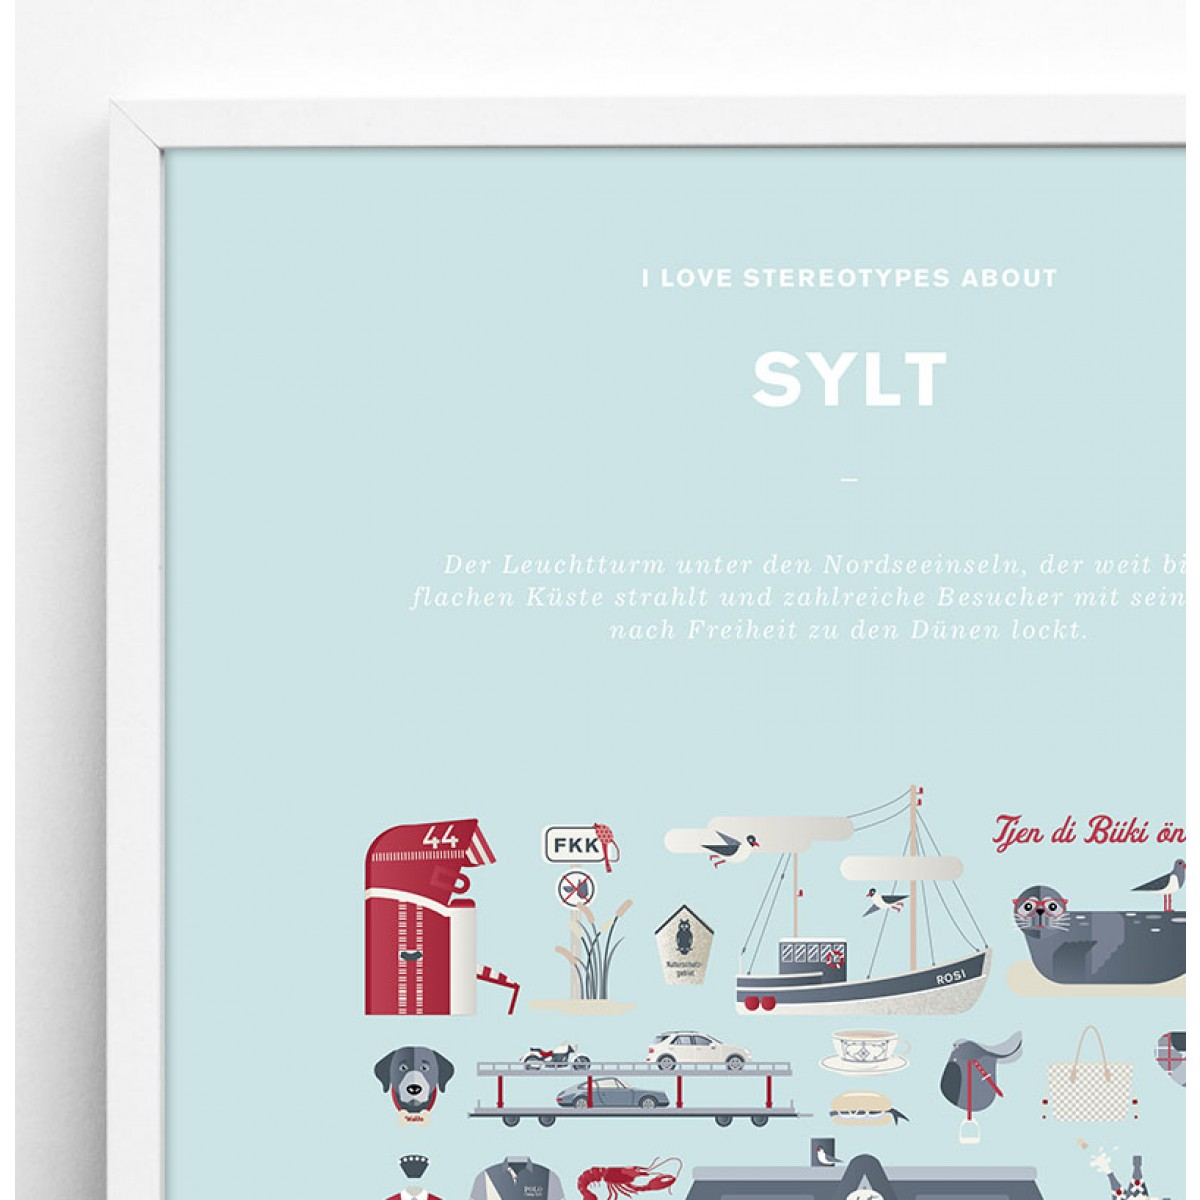 Sylt Plakat (Sonderedition)